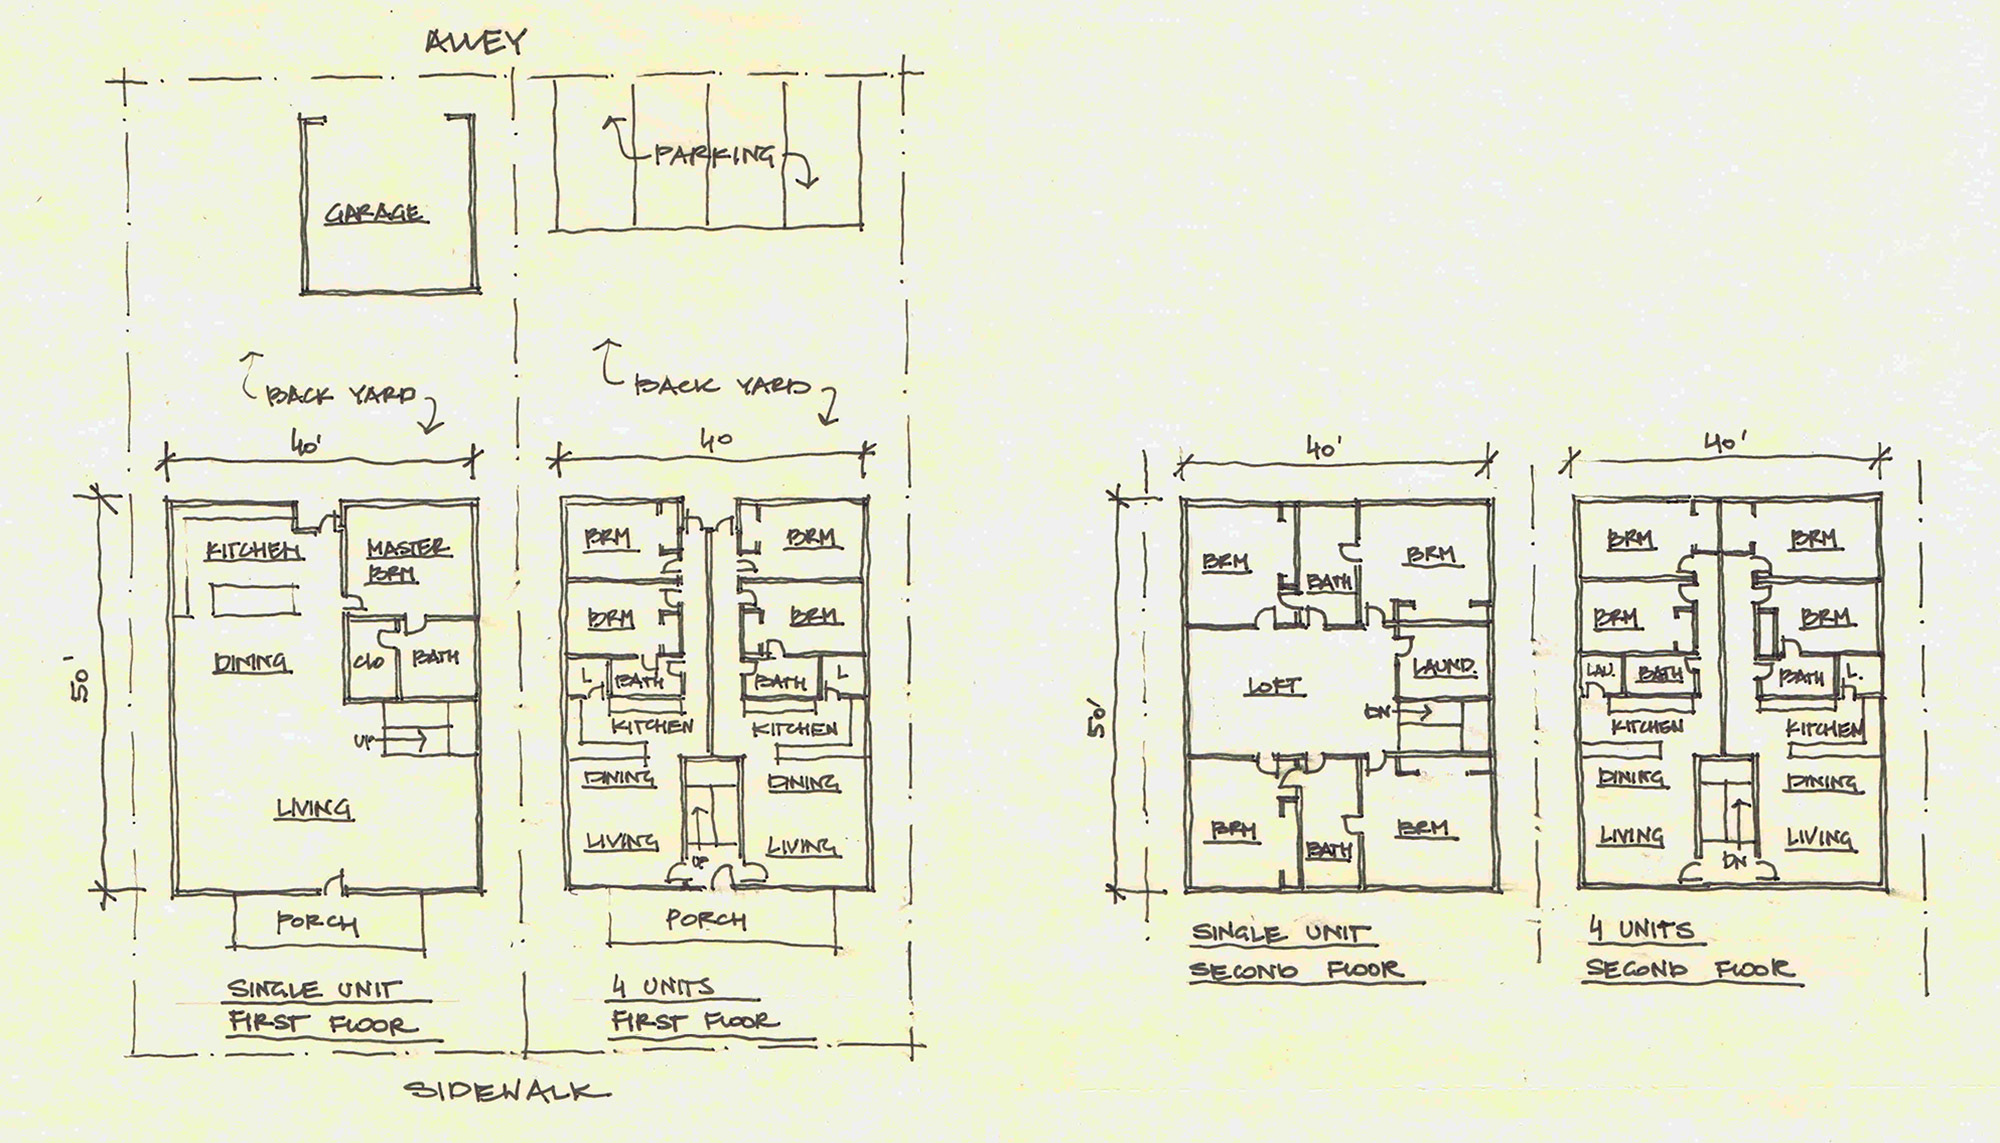 Building plans showing how four homes can fit into the same space as one large home